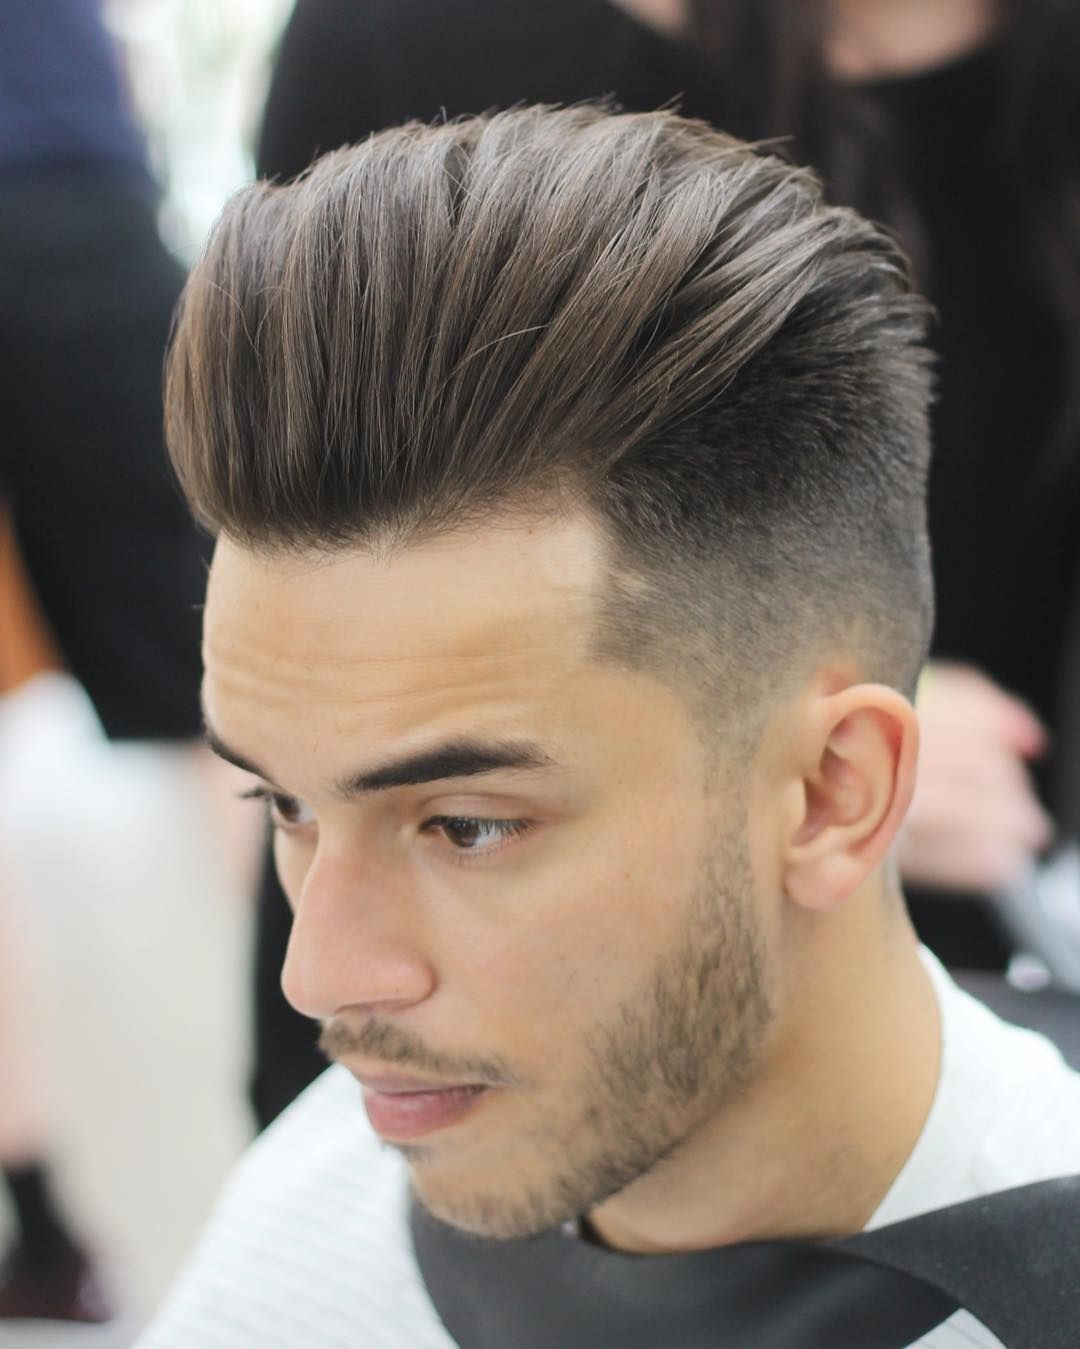 Cool  Hottest Mens Hairstyles For Straight Hair Try Something - Straight hair styles for men